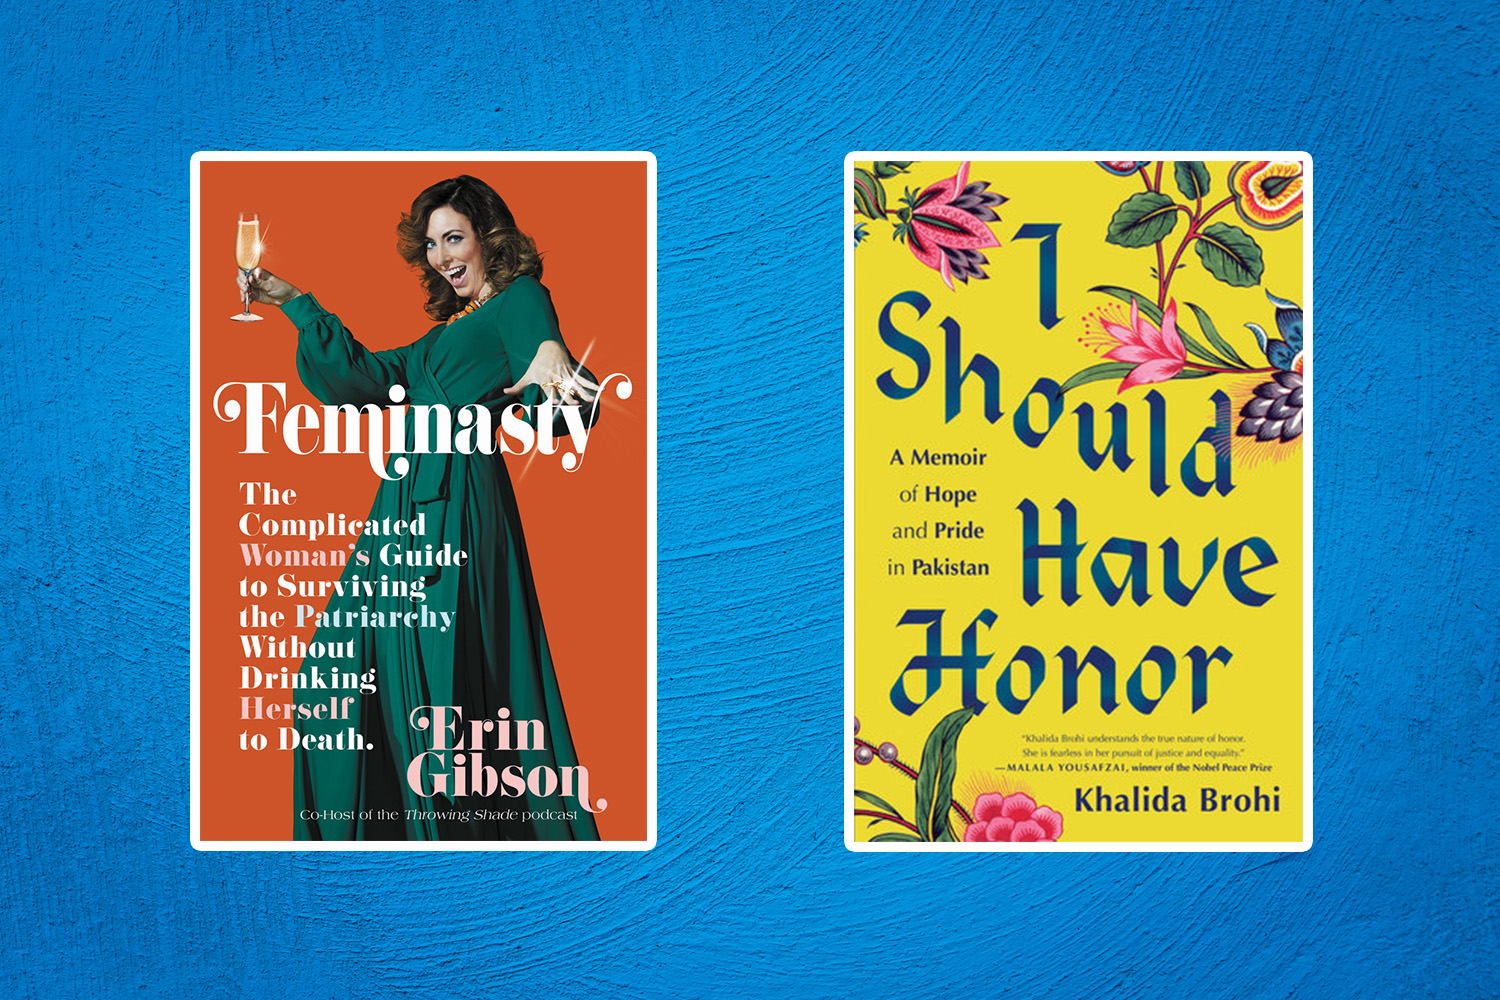 Books coming out this week: <em>Feminasty</em>, <em>I Should Have Honor</em>, and more